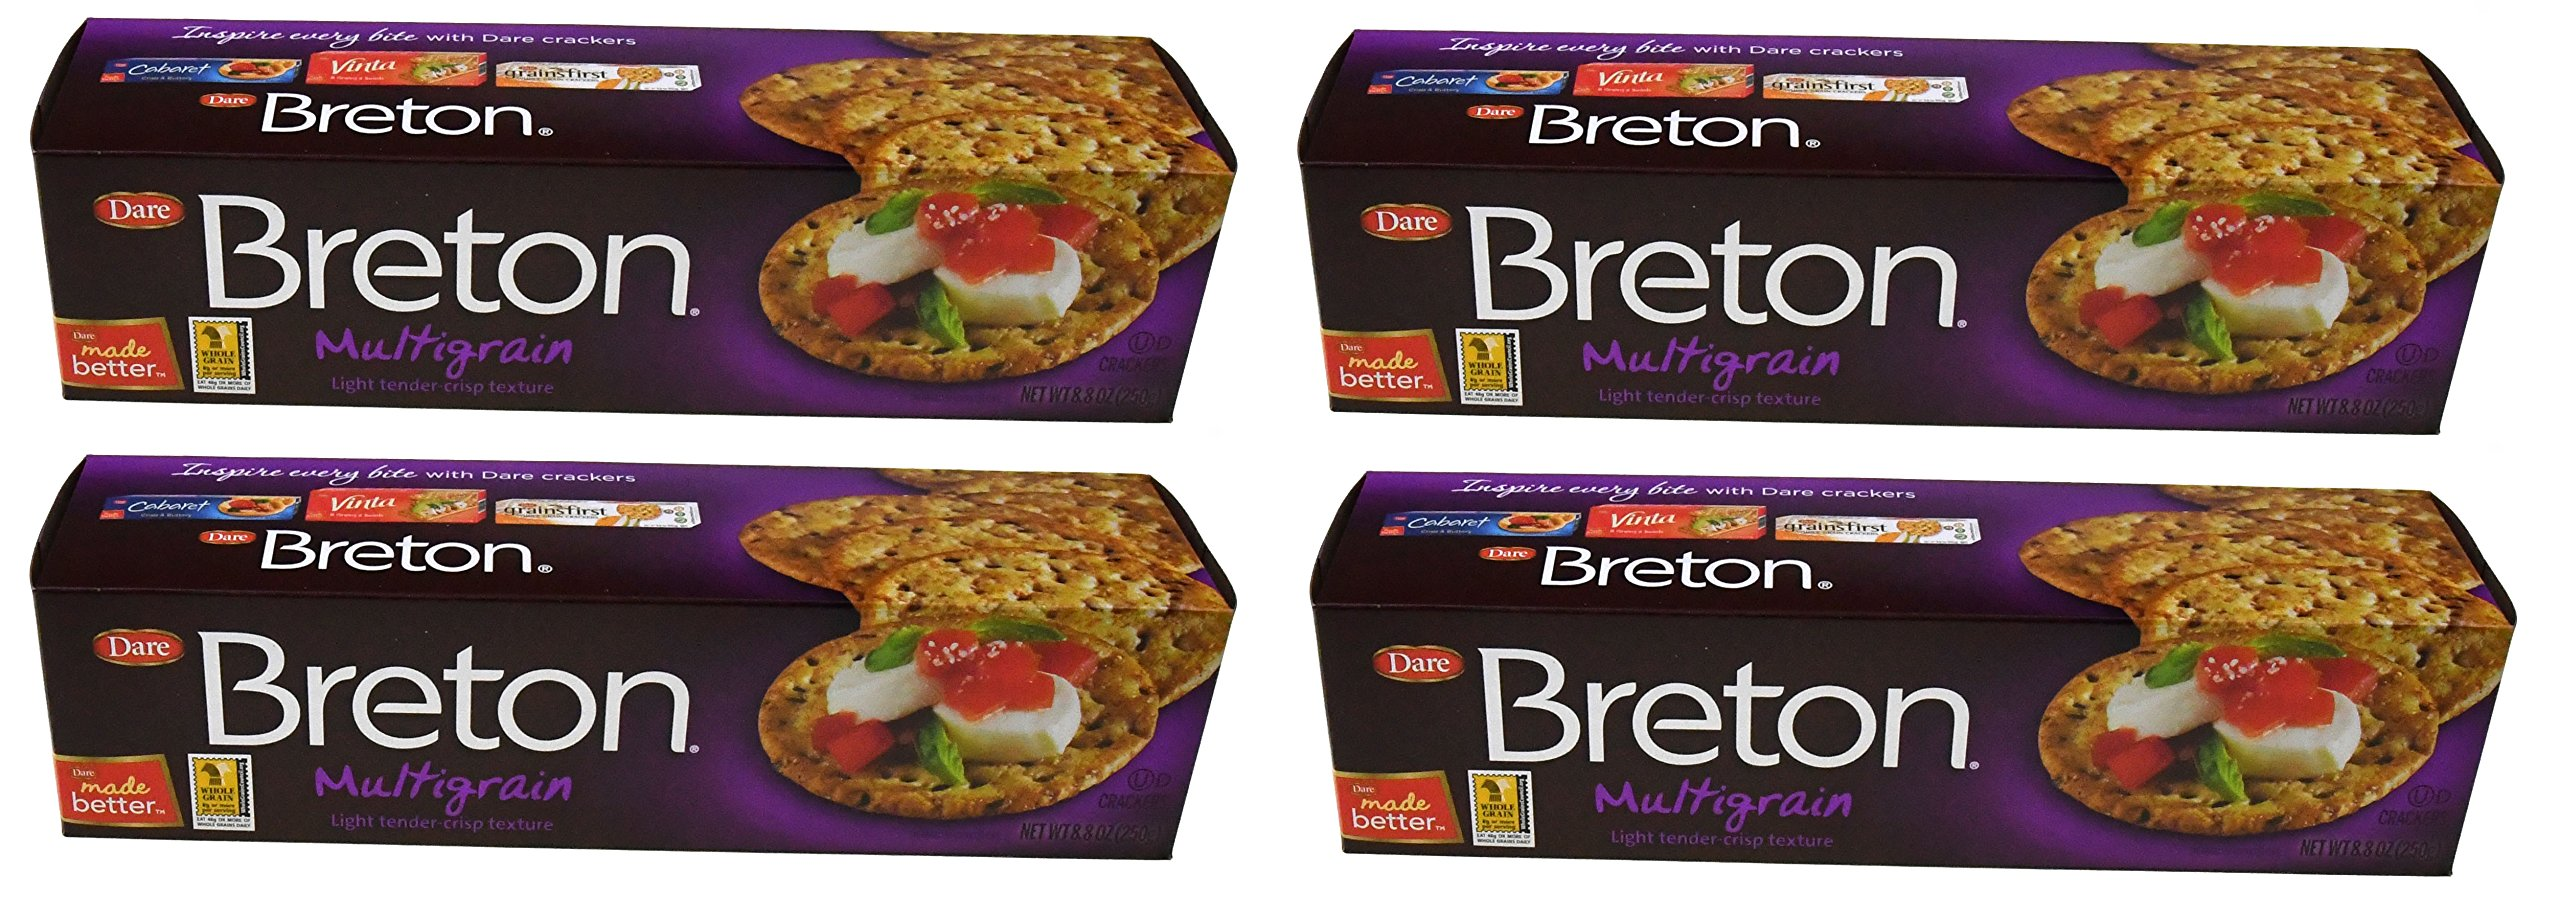 Dare Breton Crackers, Multigrain Party Snacks with no Artificial Flavors and 8 Grams of Whole Grains per Serving 8.8 Ounces (Pack of 4) by Breton